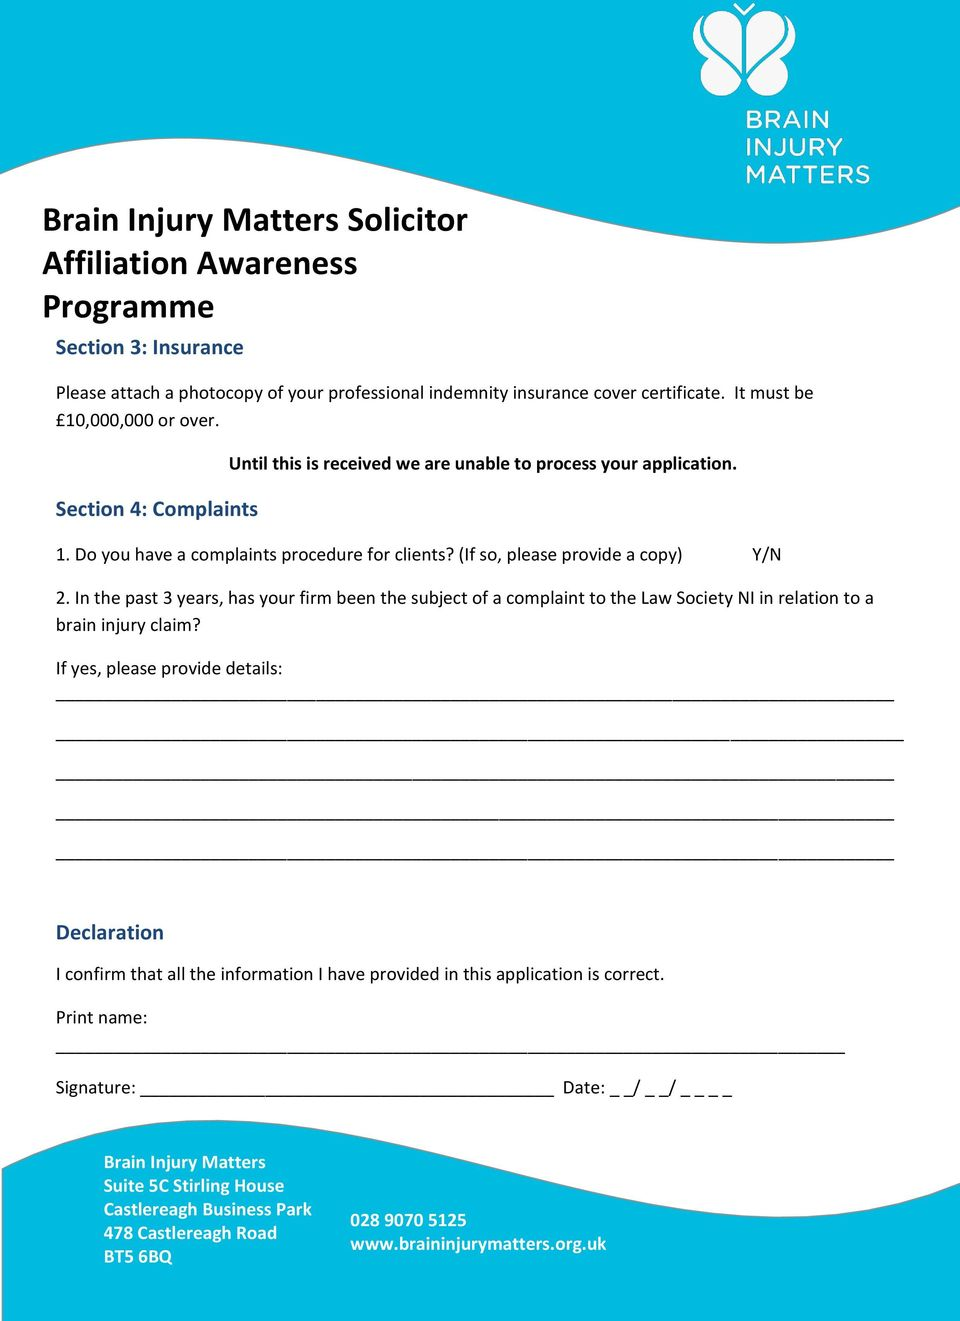 In the past 3 years, has your firm been the subject of a complaint to the Law Society NI in relation to a brain injury claim?